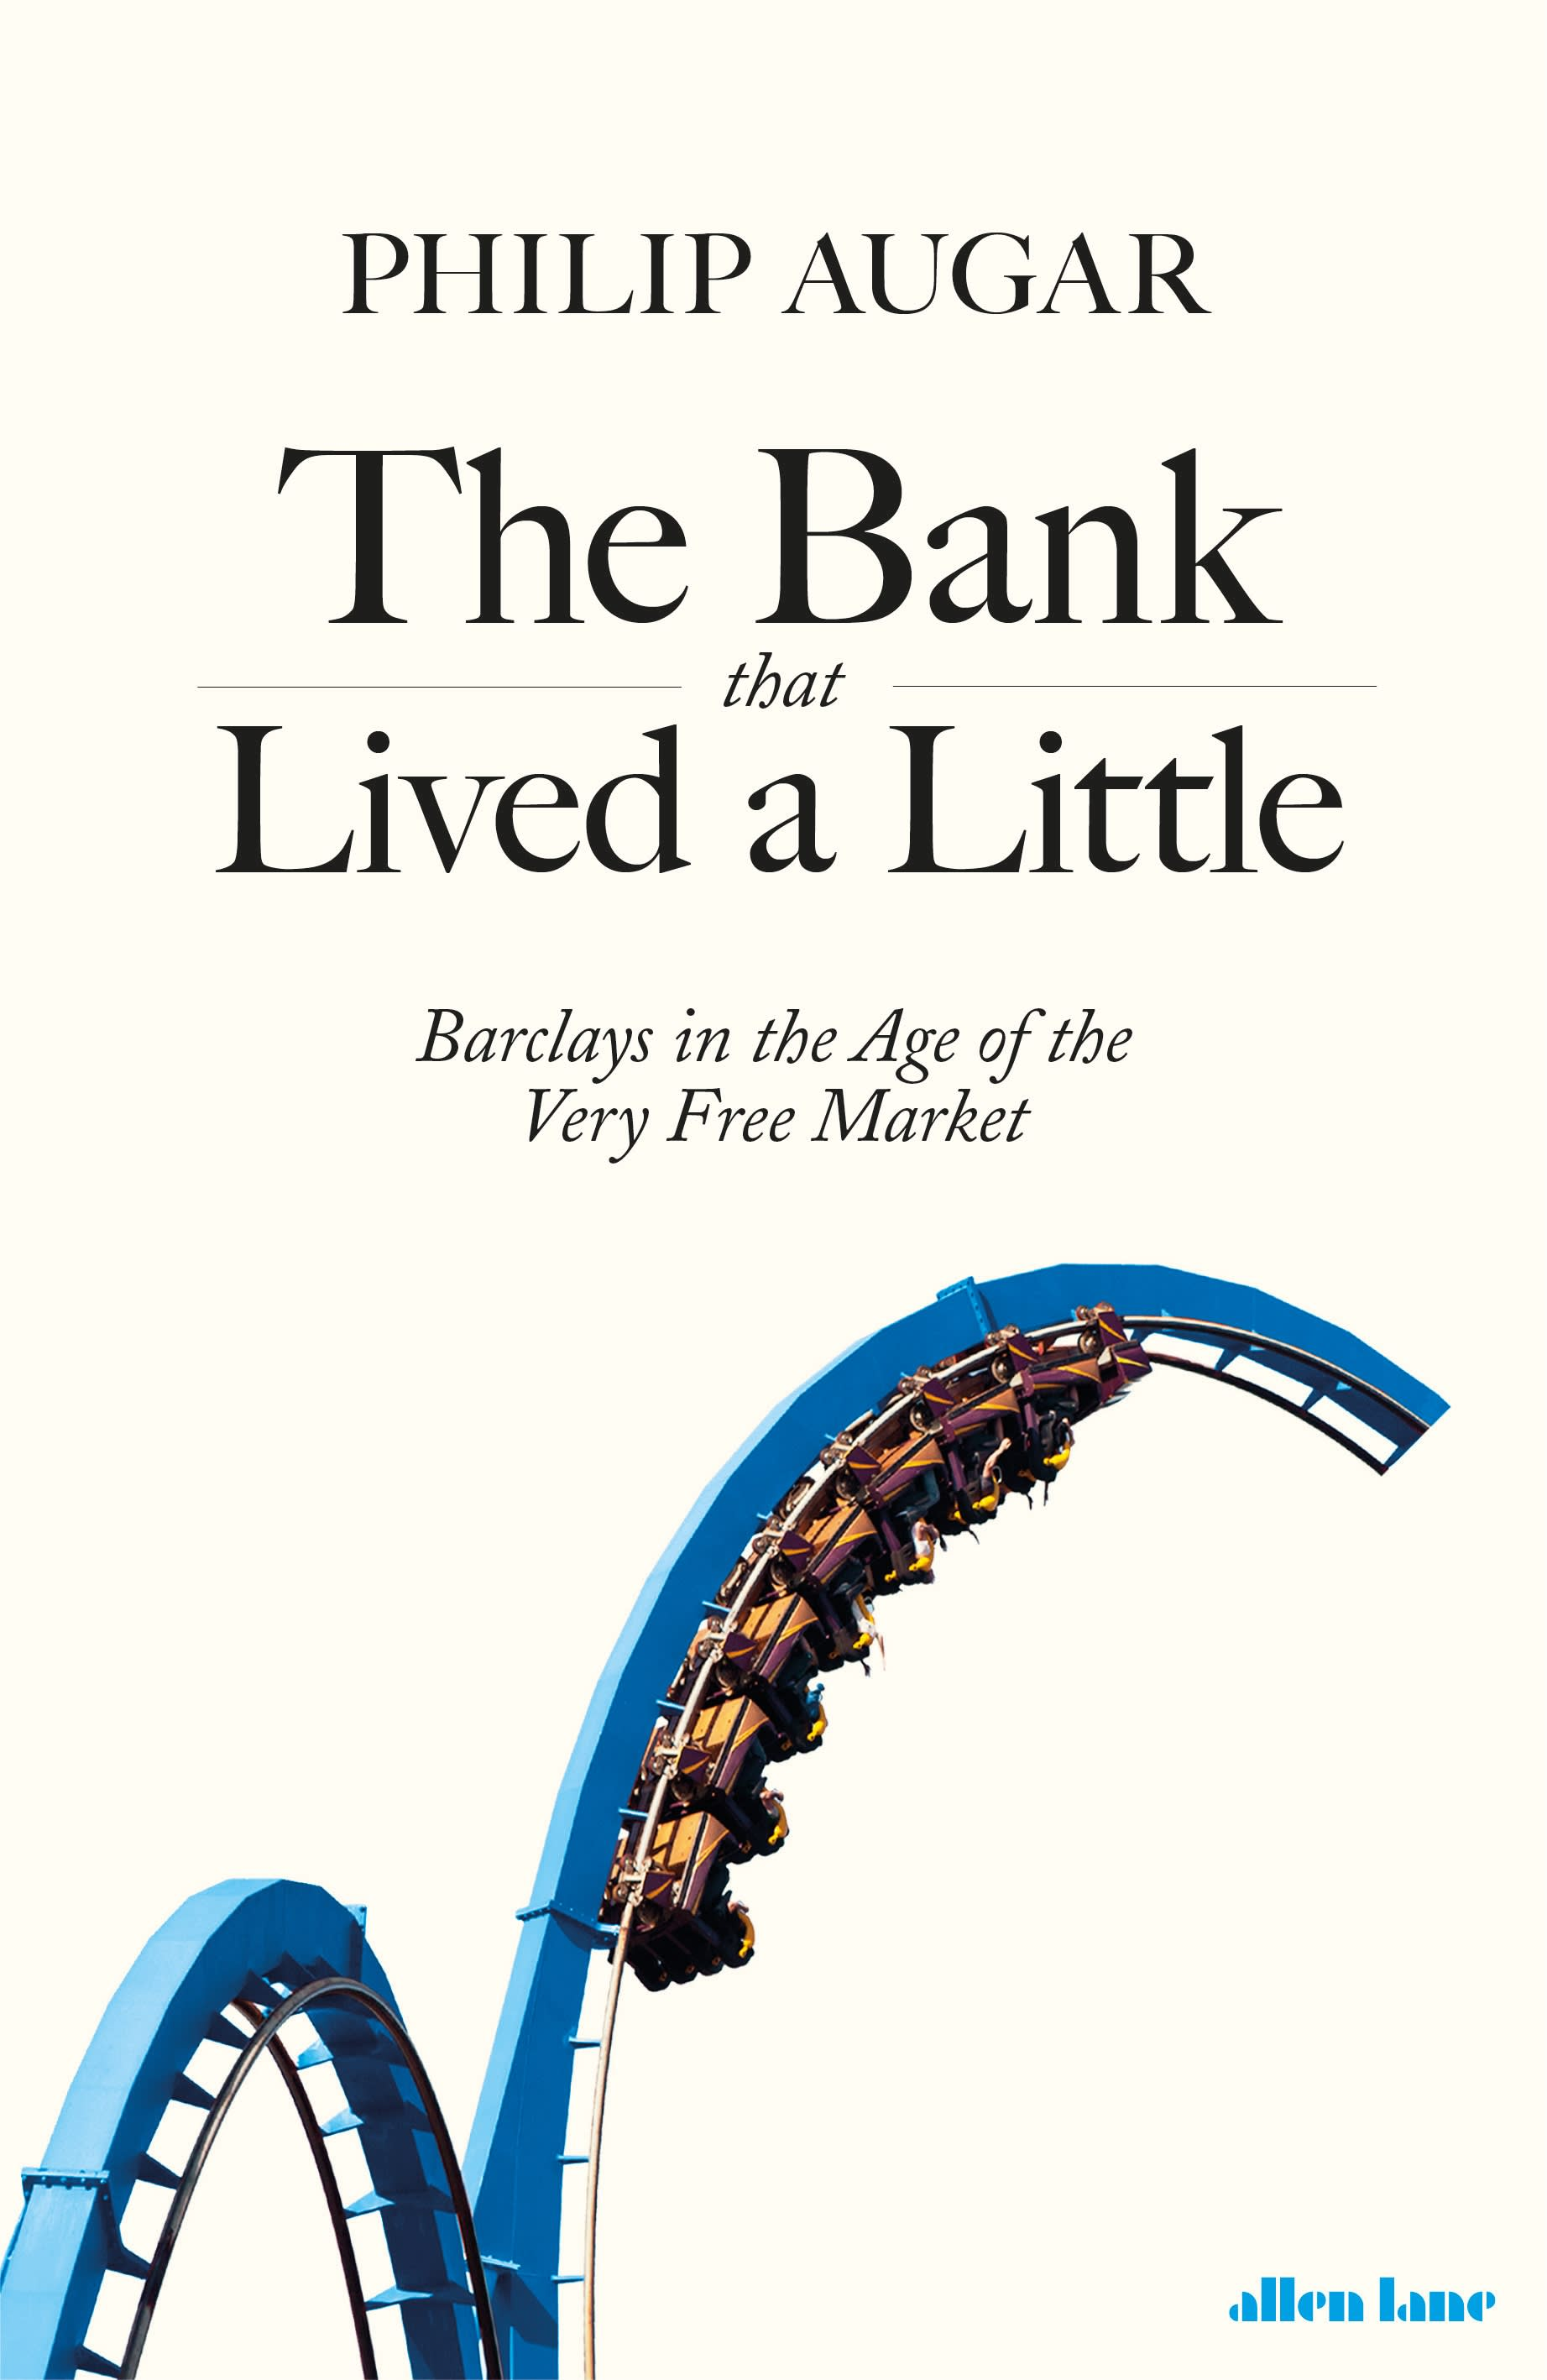 The Bank That Lived a Little by Philip Augar